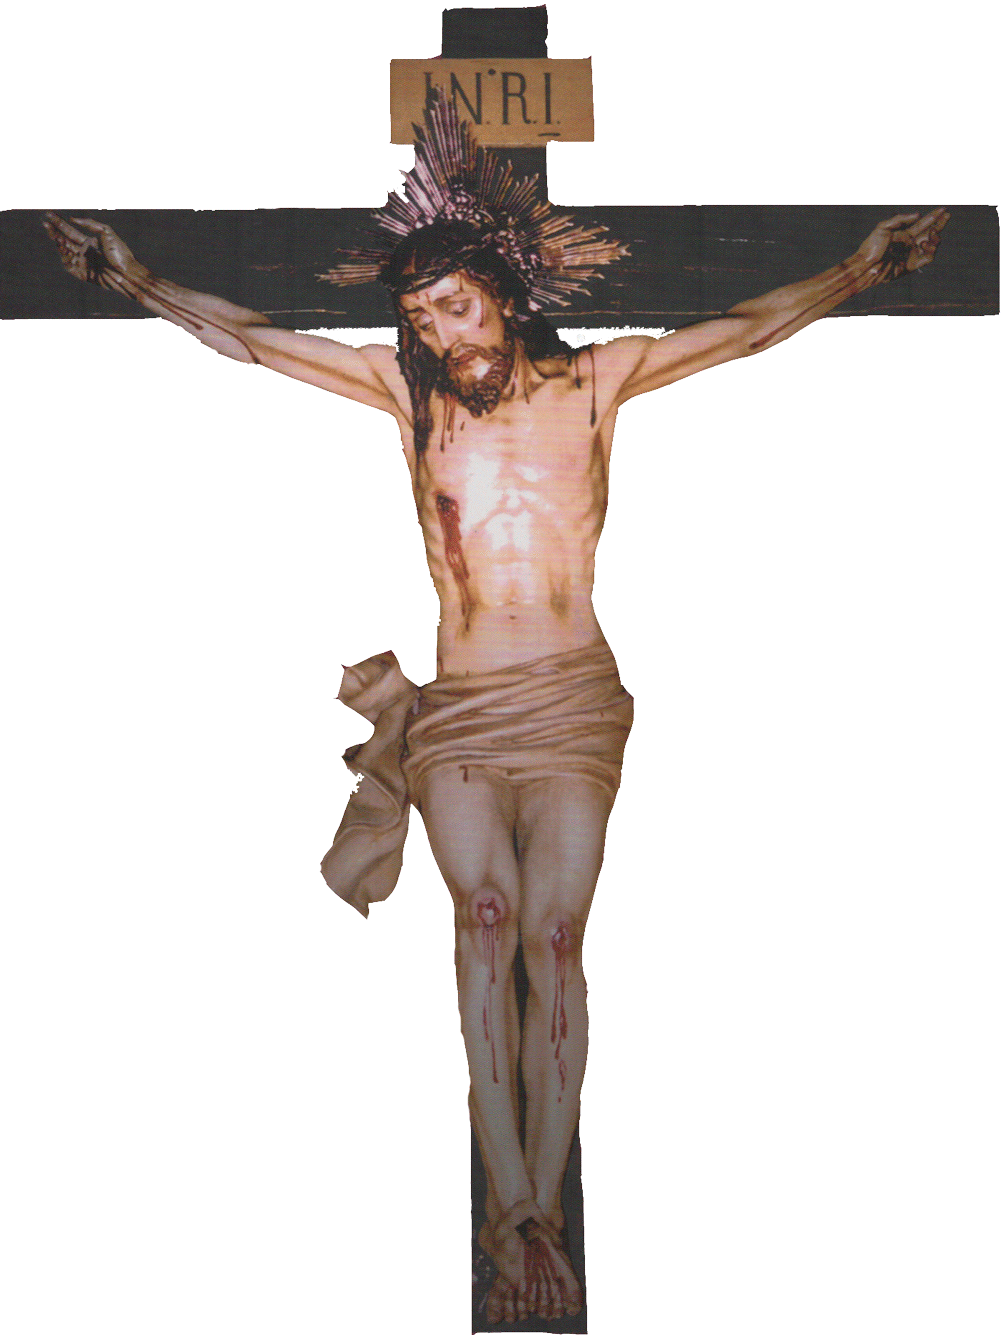 Sangre de n se. Crucifix clipart crucified jesus